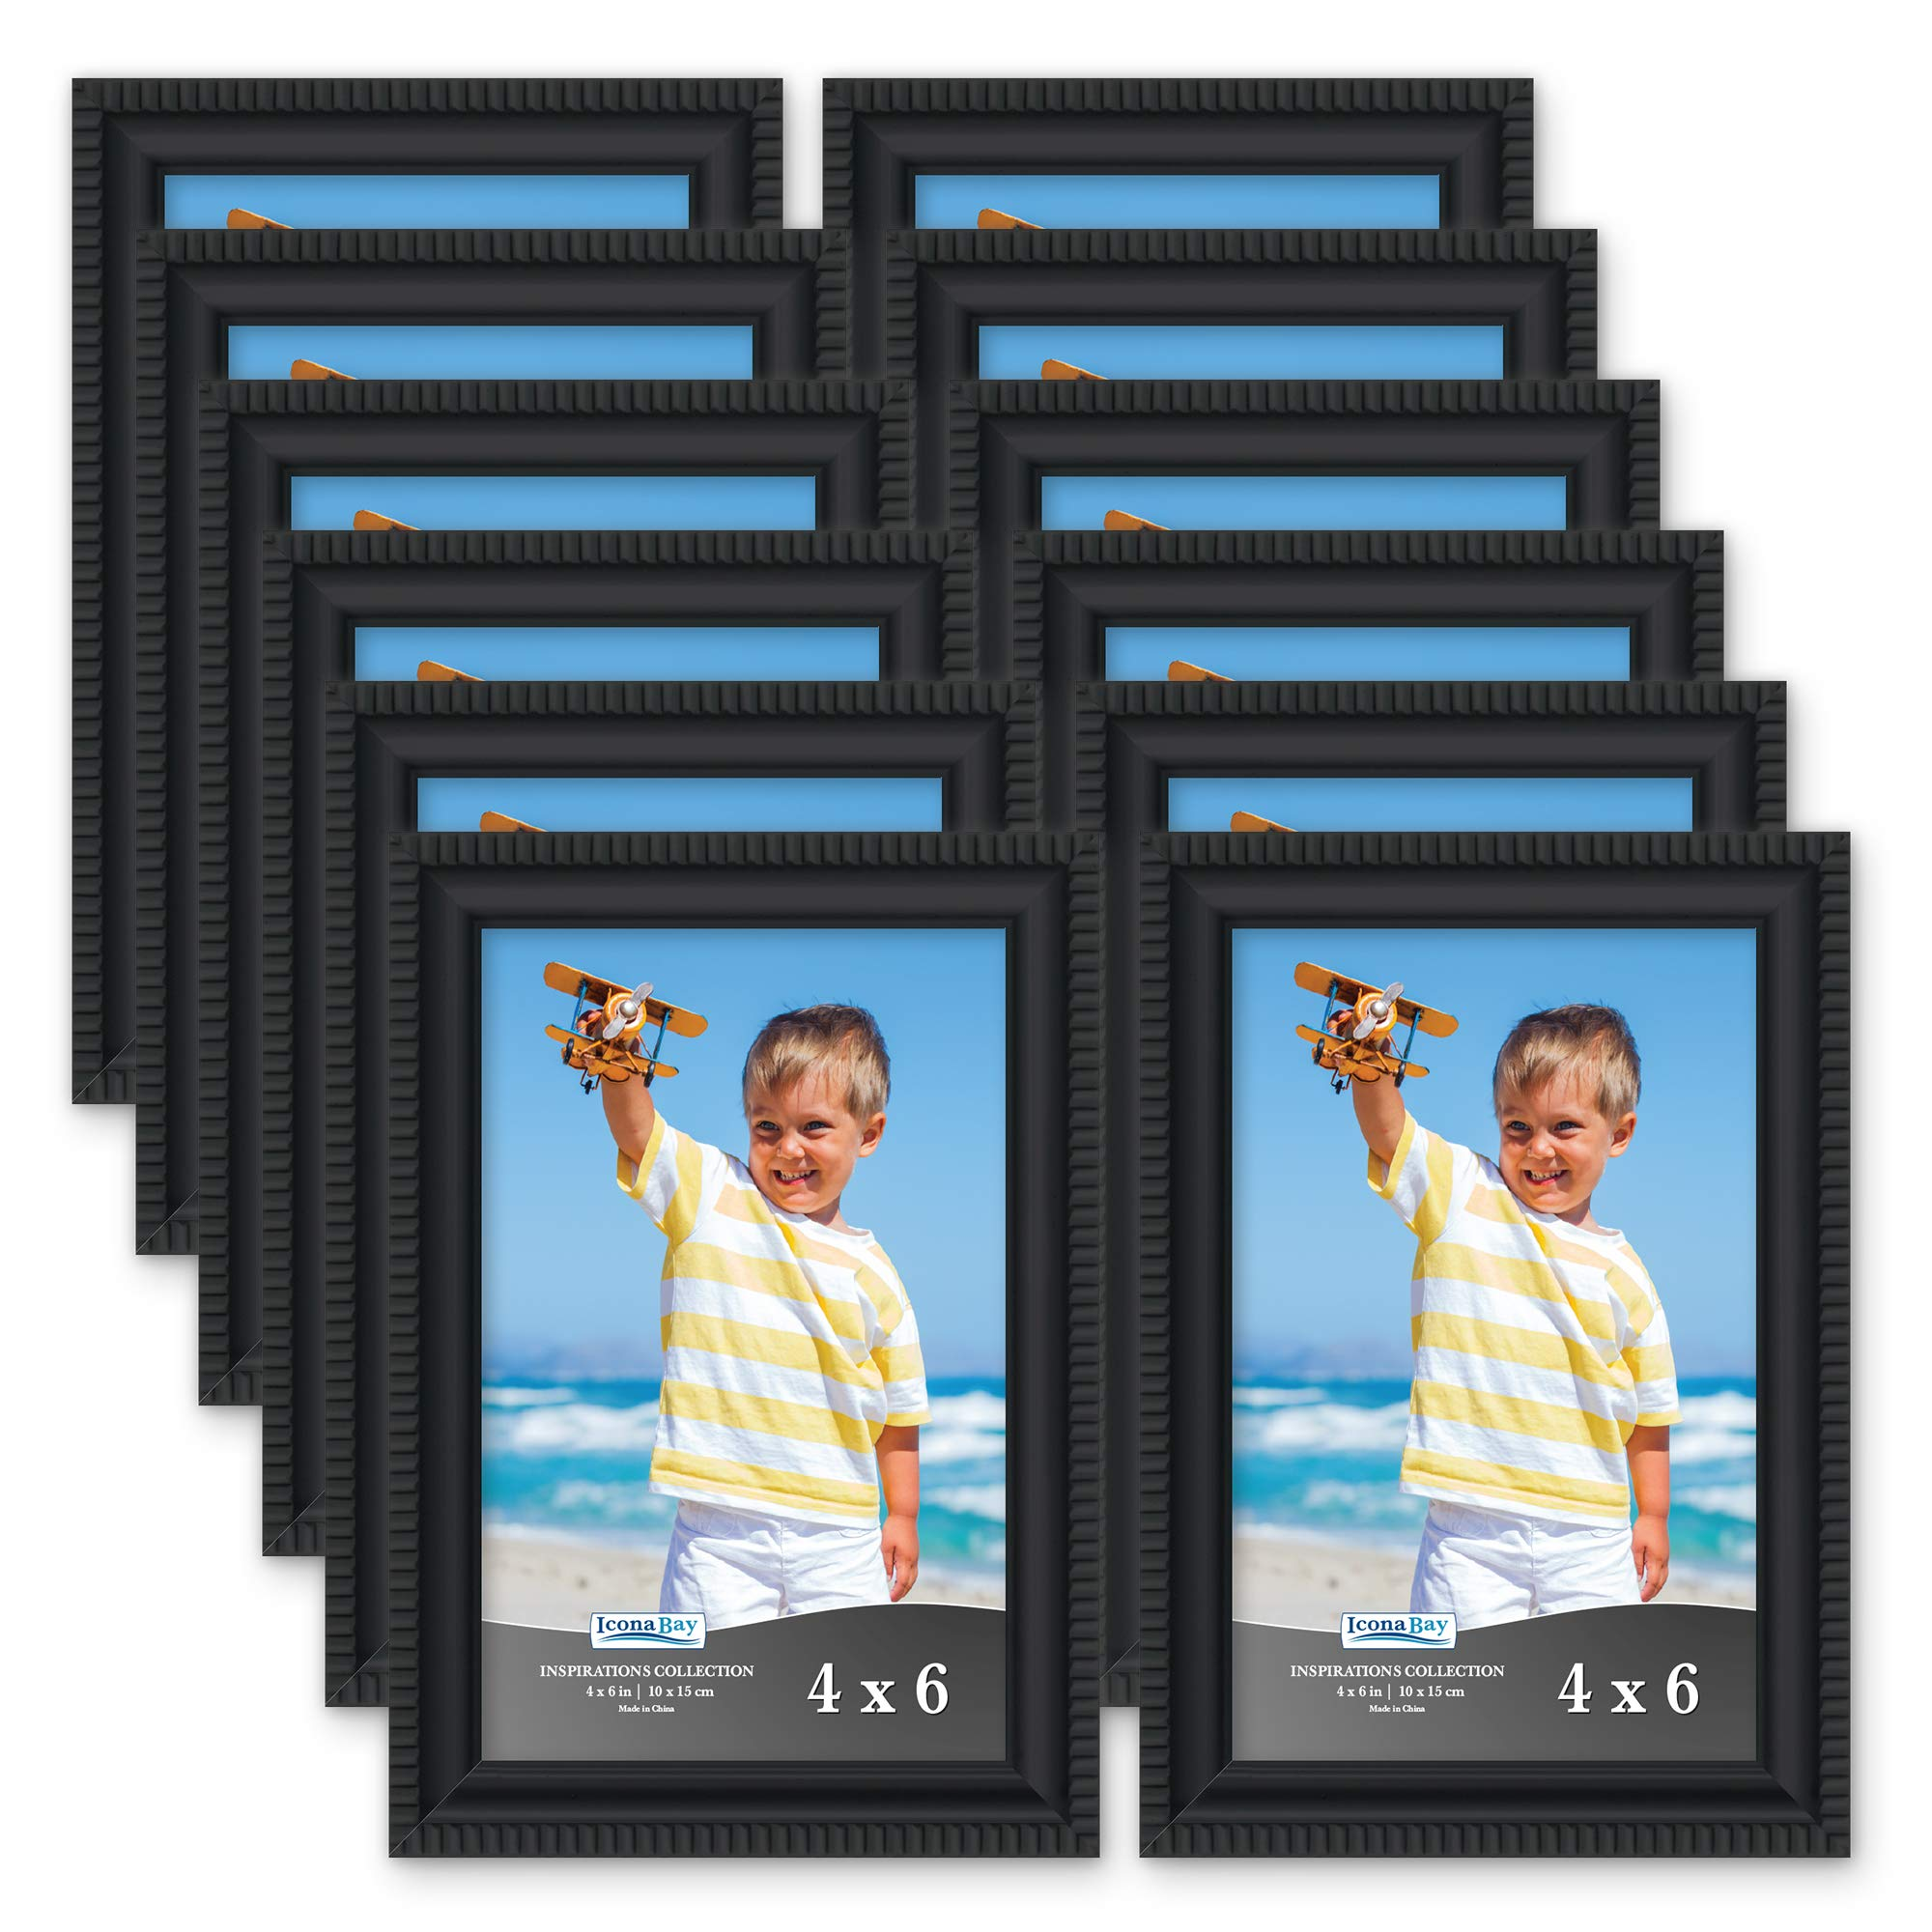 Icona Bay 4x6 Picture Frames (12 Pack, Black) Picture Frame Set, Wall Mount or Table Top, Set of 12 Inspirations Collection by Icona Bay